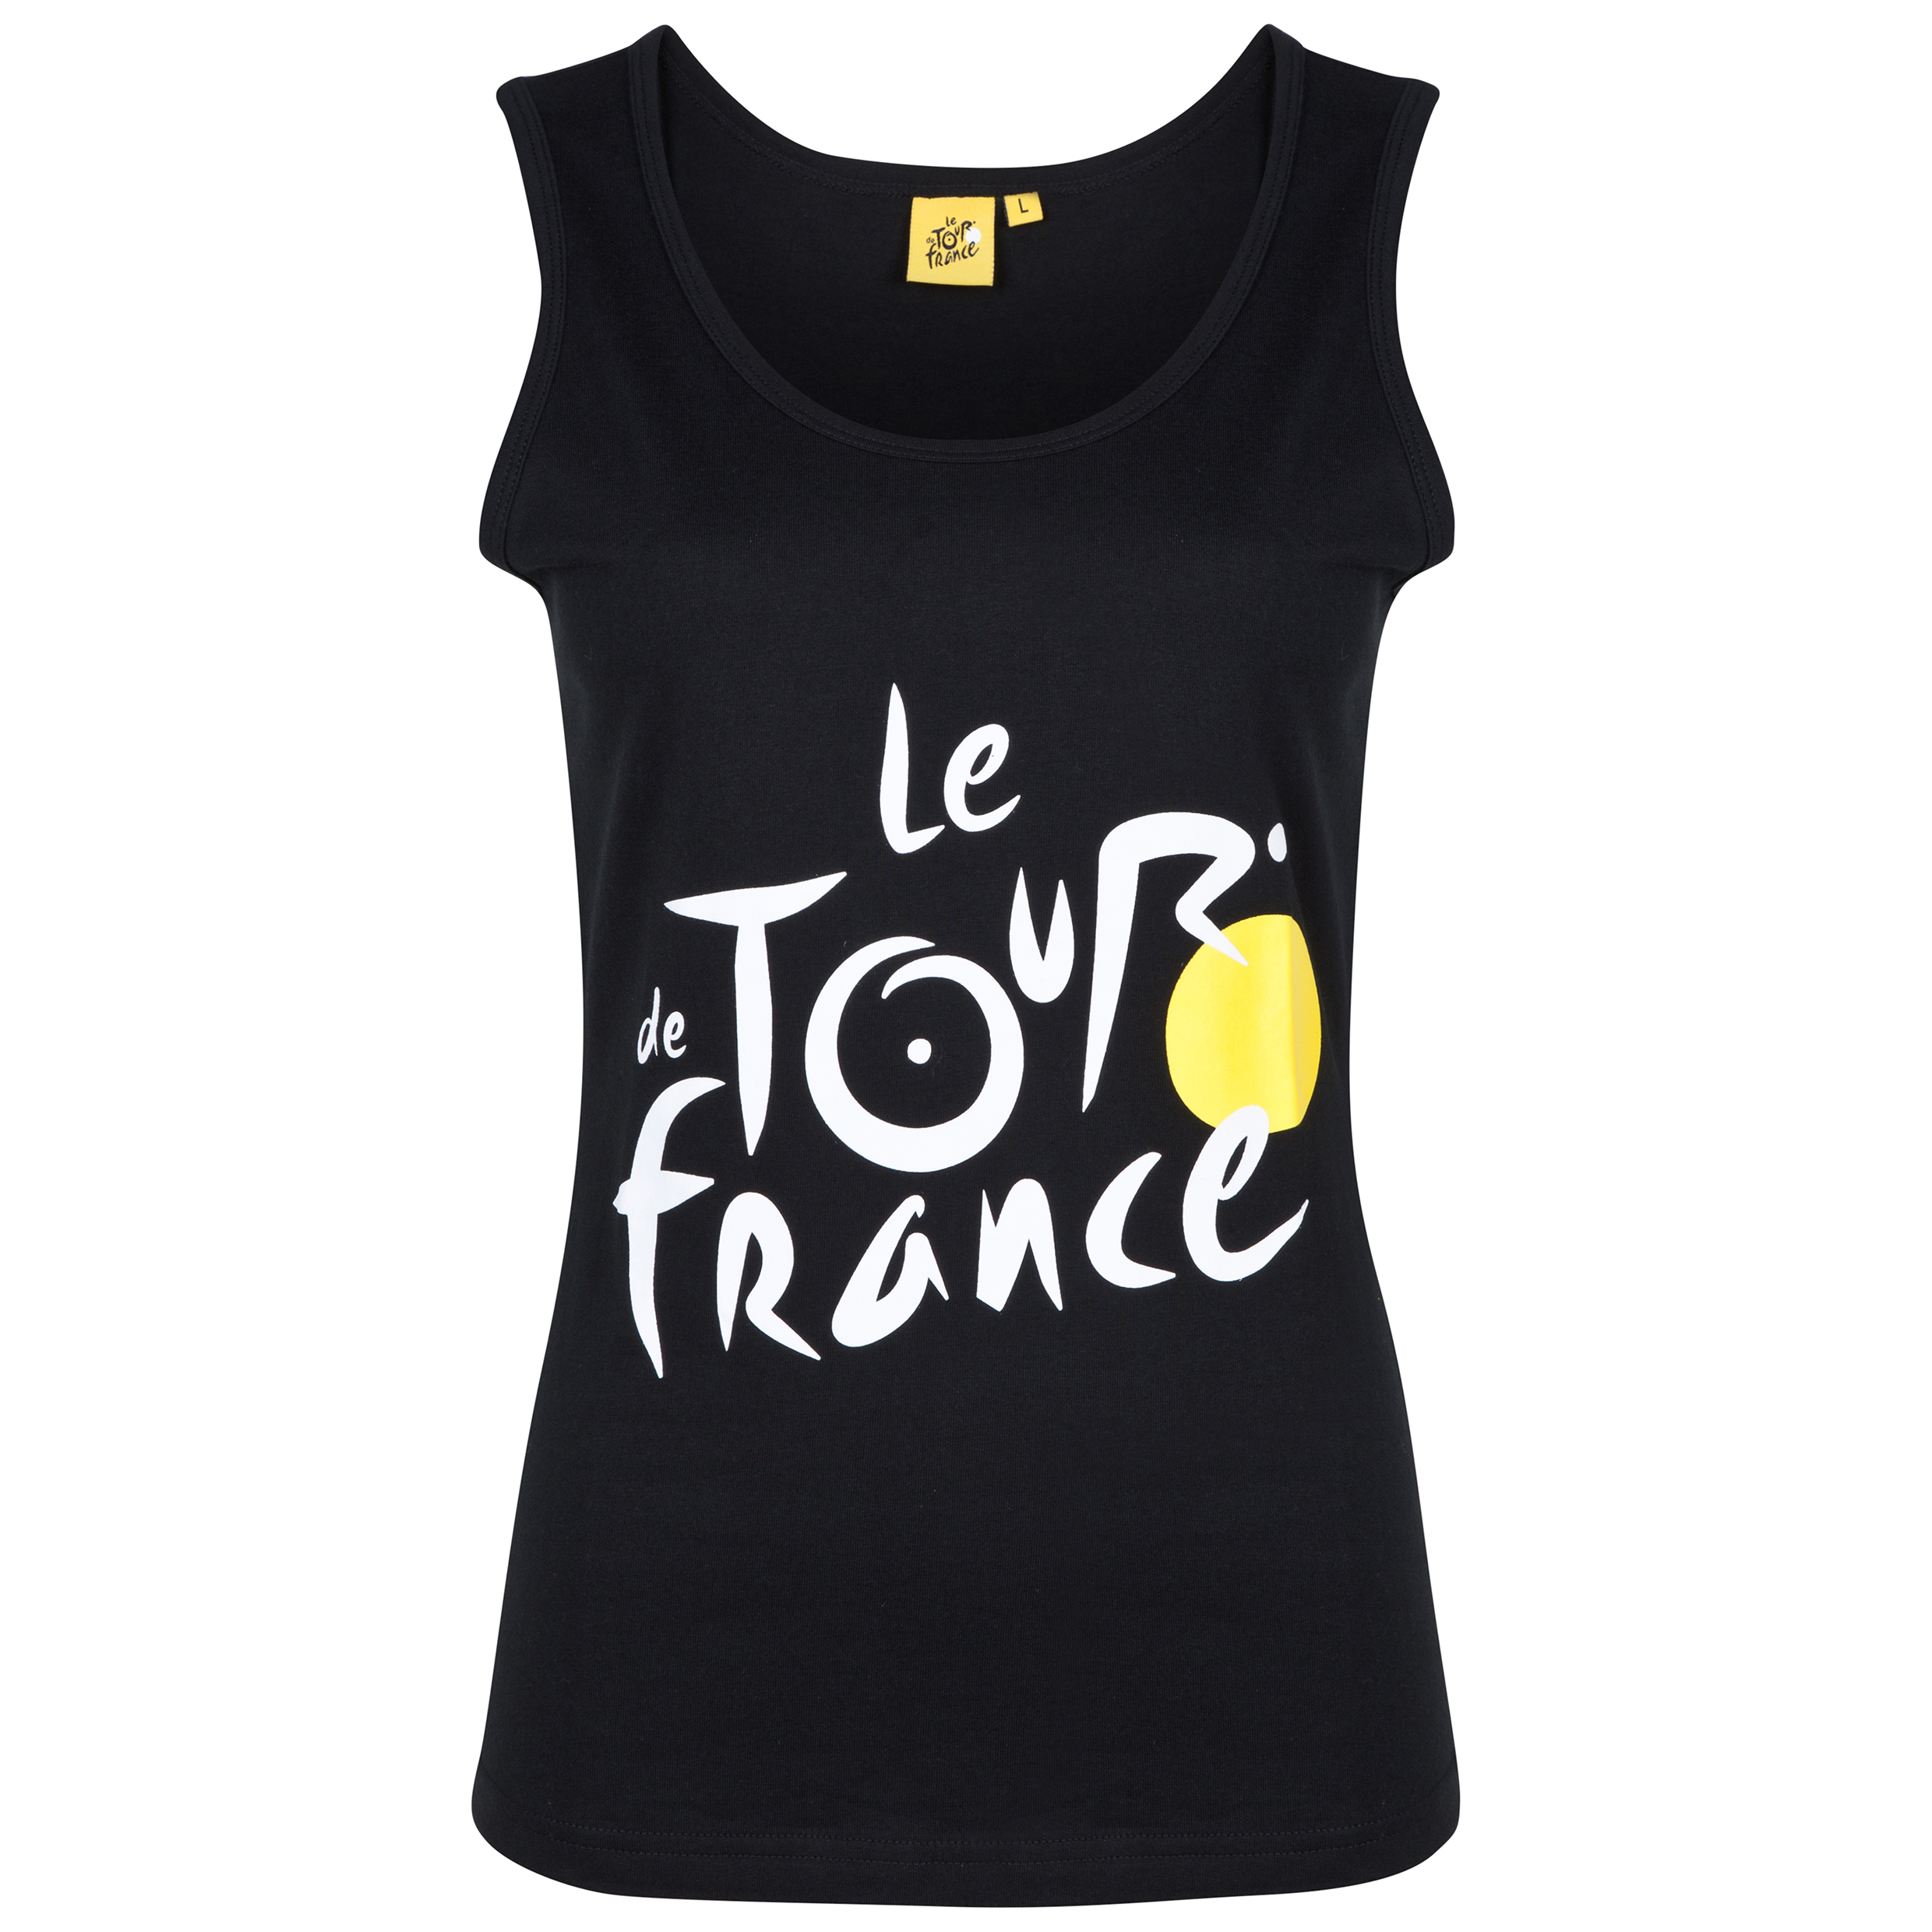 Le Tour de France Logo Vest - Black - Womens